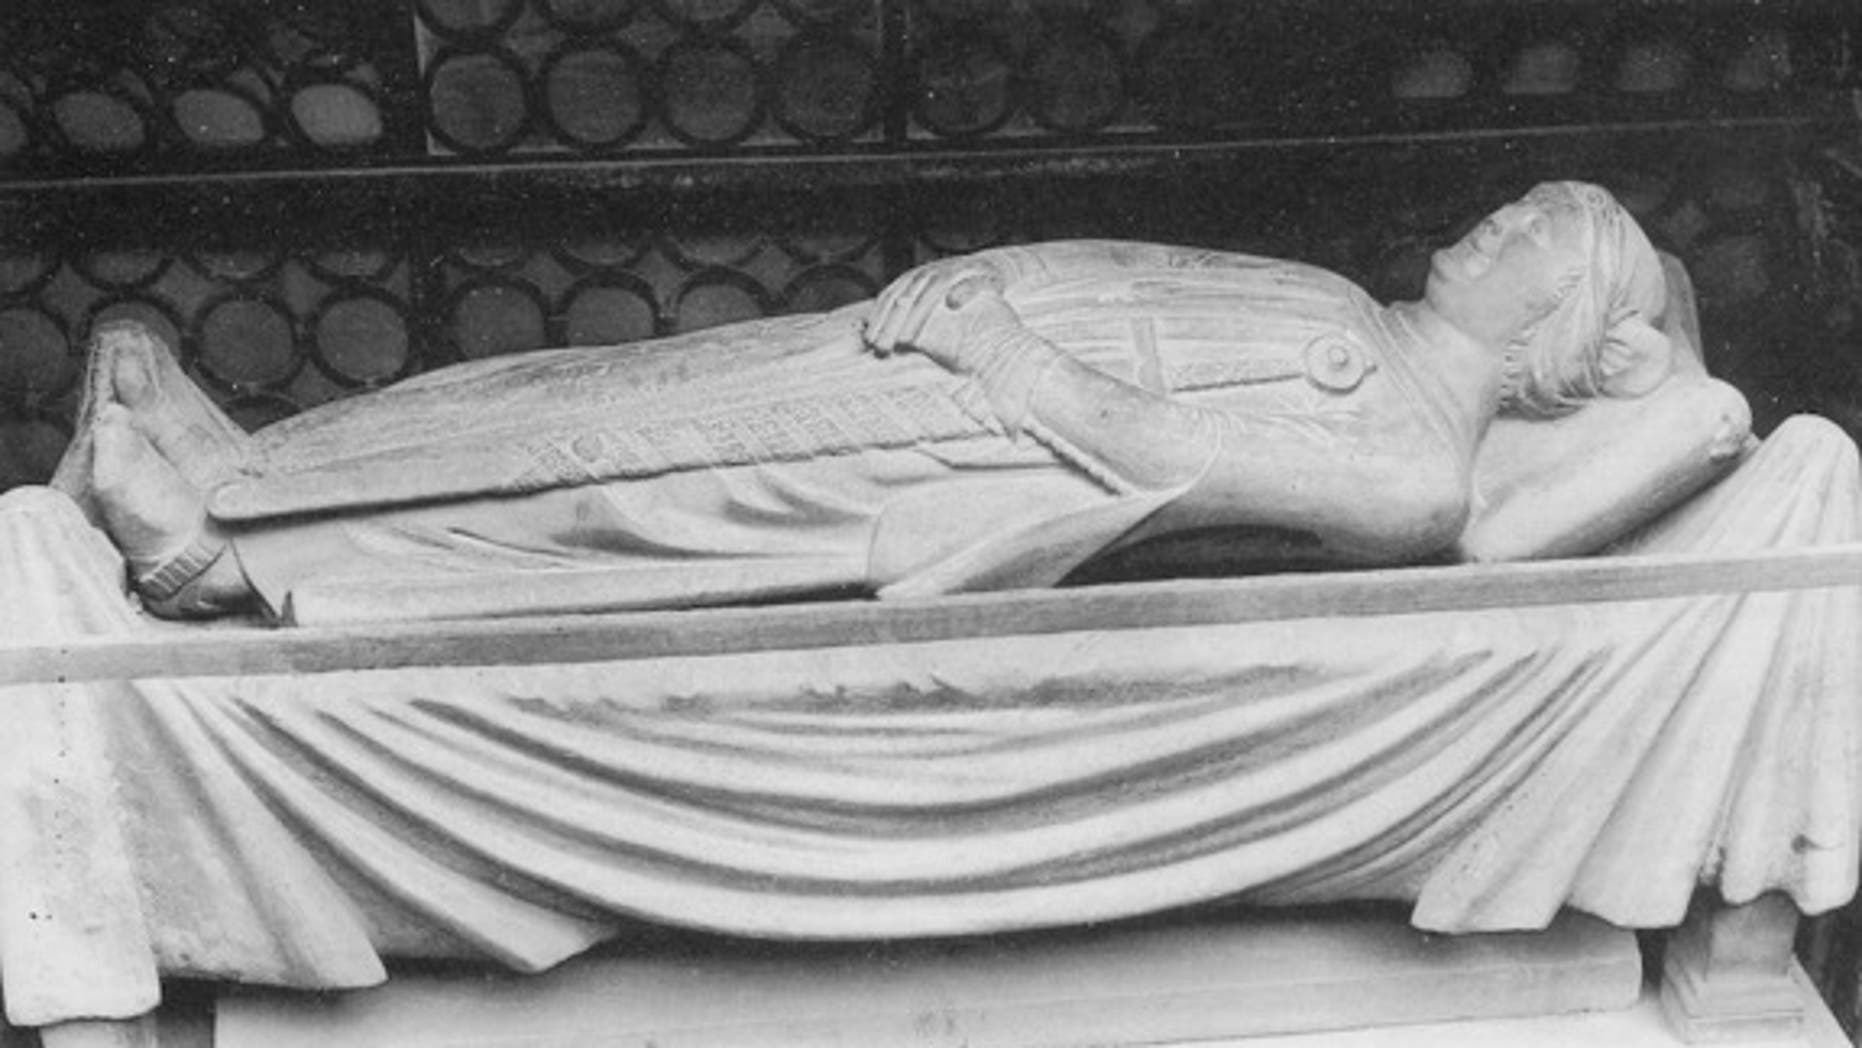 Cangrande's carefully carved sarcophagus was opened so that his body could be studied by scientists.